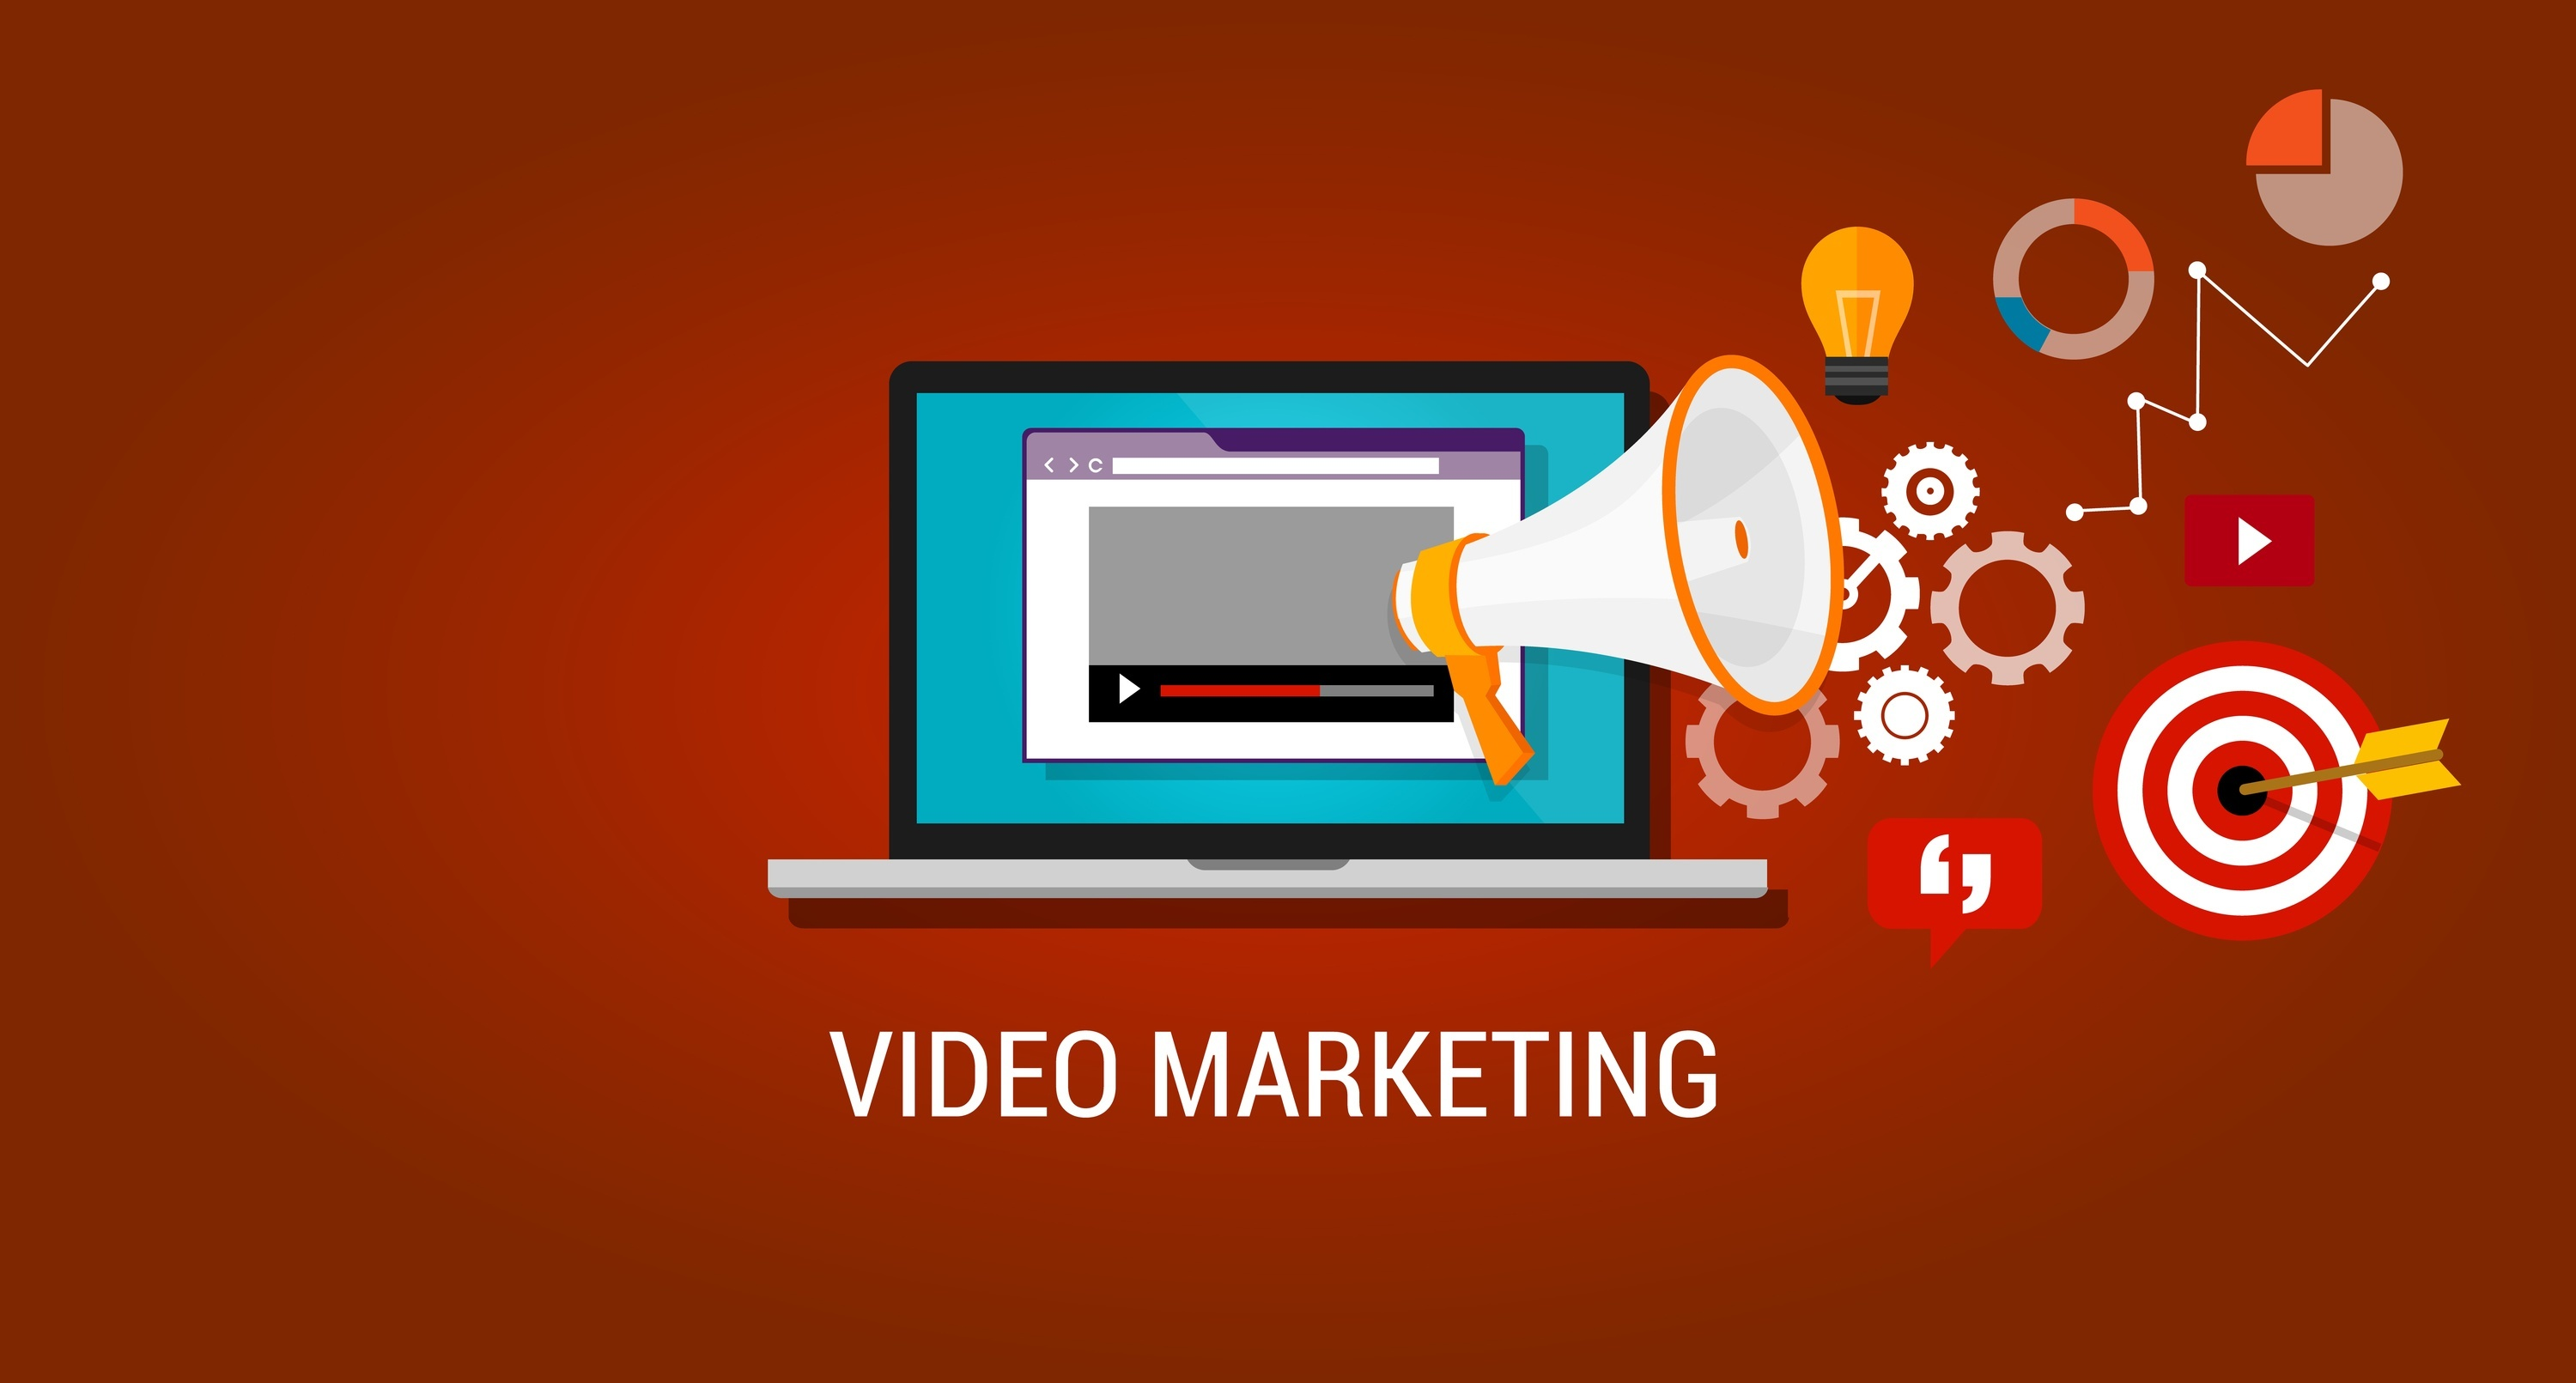 Our Modern Digital Landscape: The Importance Of Video Marketing